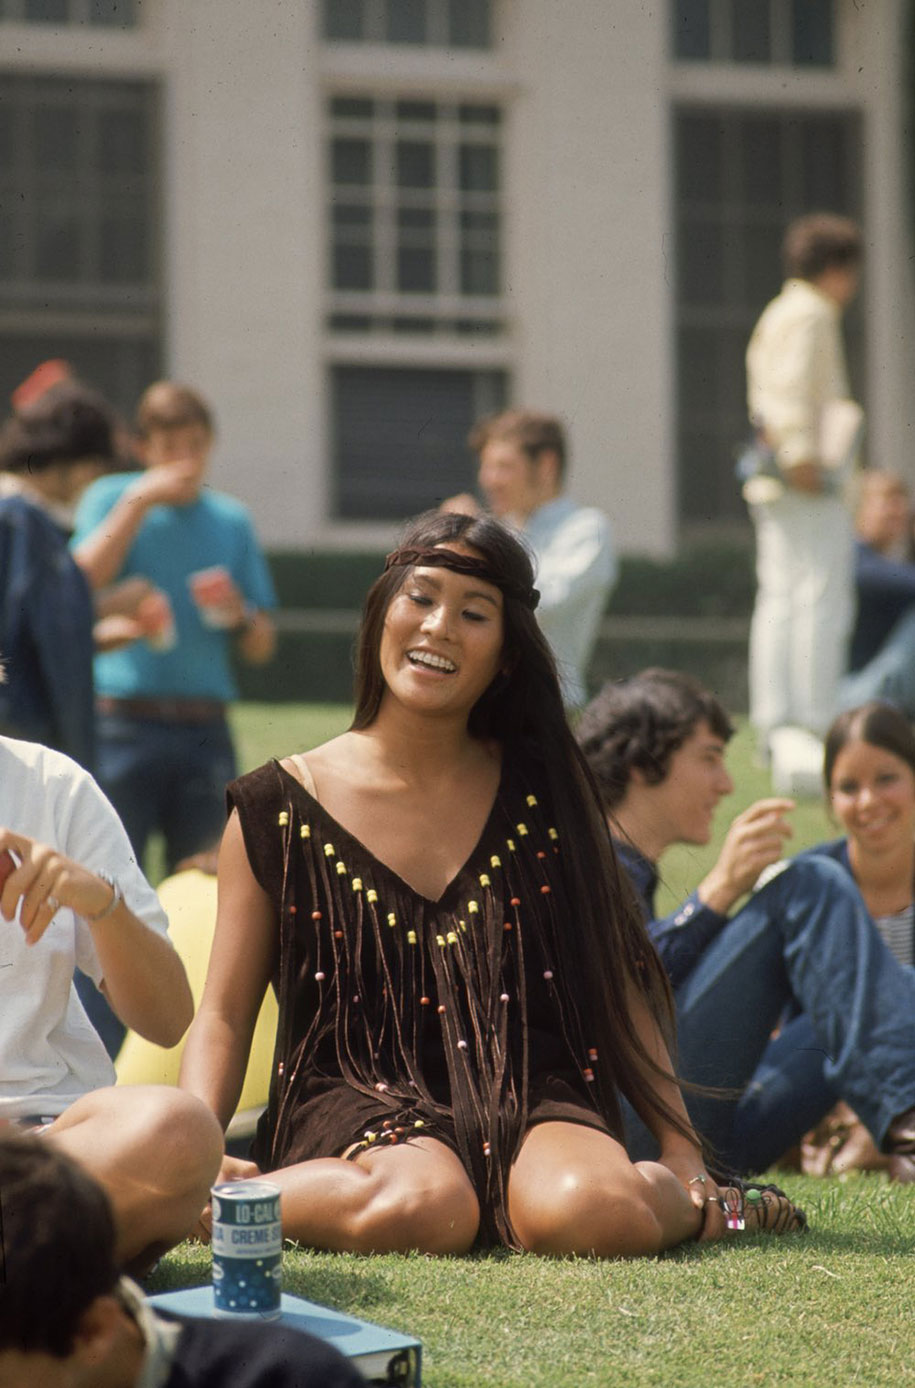 1969-hippie-high-school-counterculture-photography-4